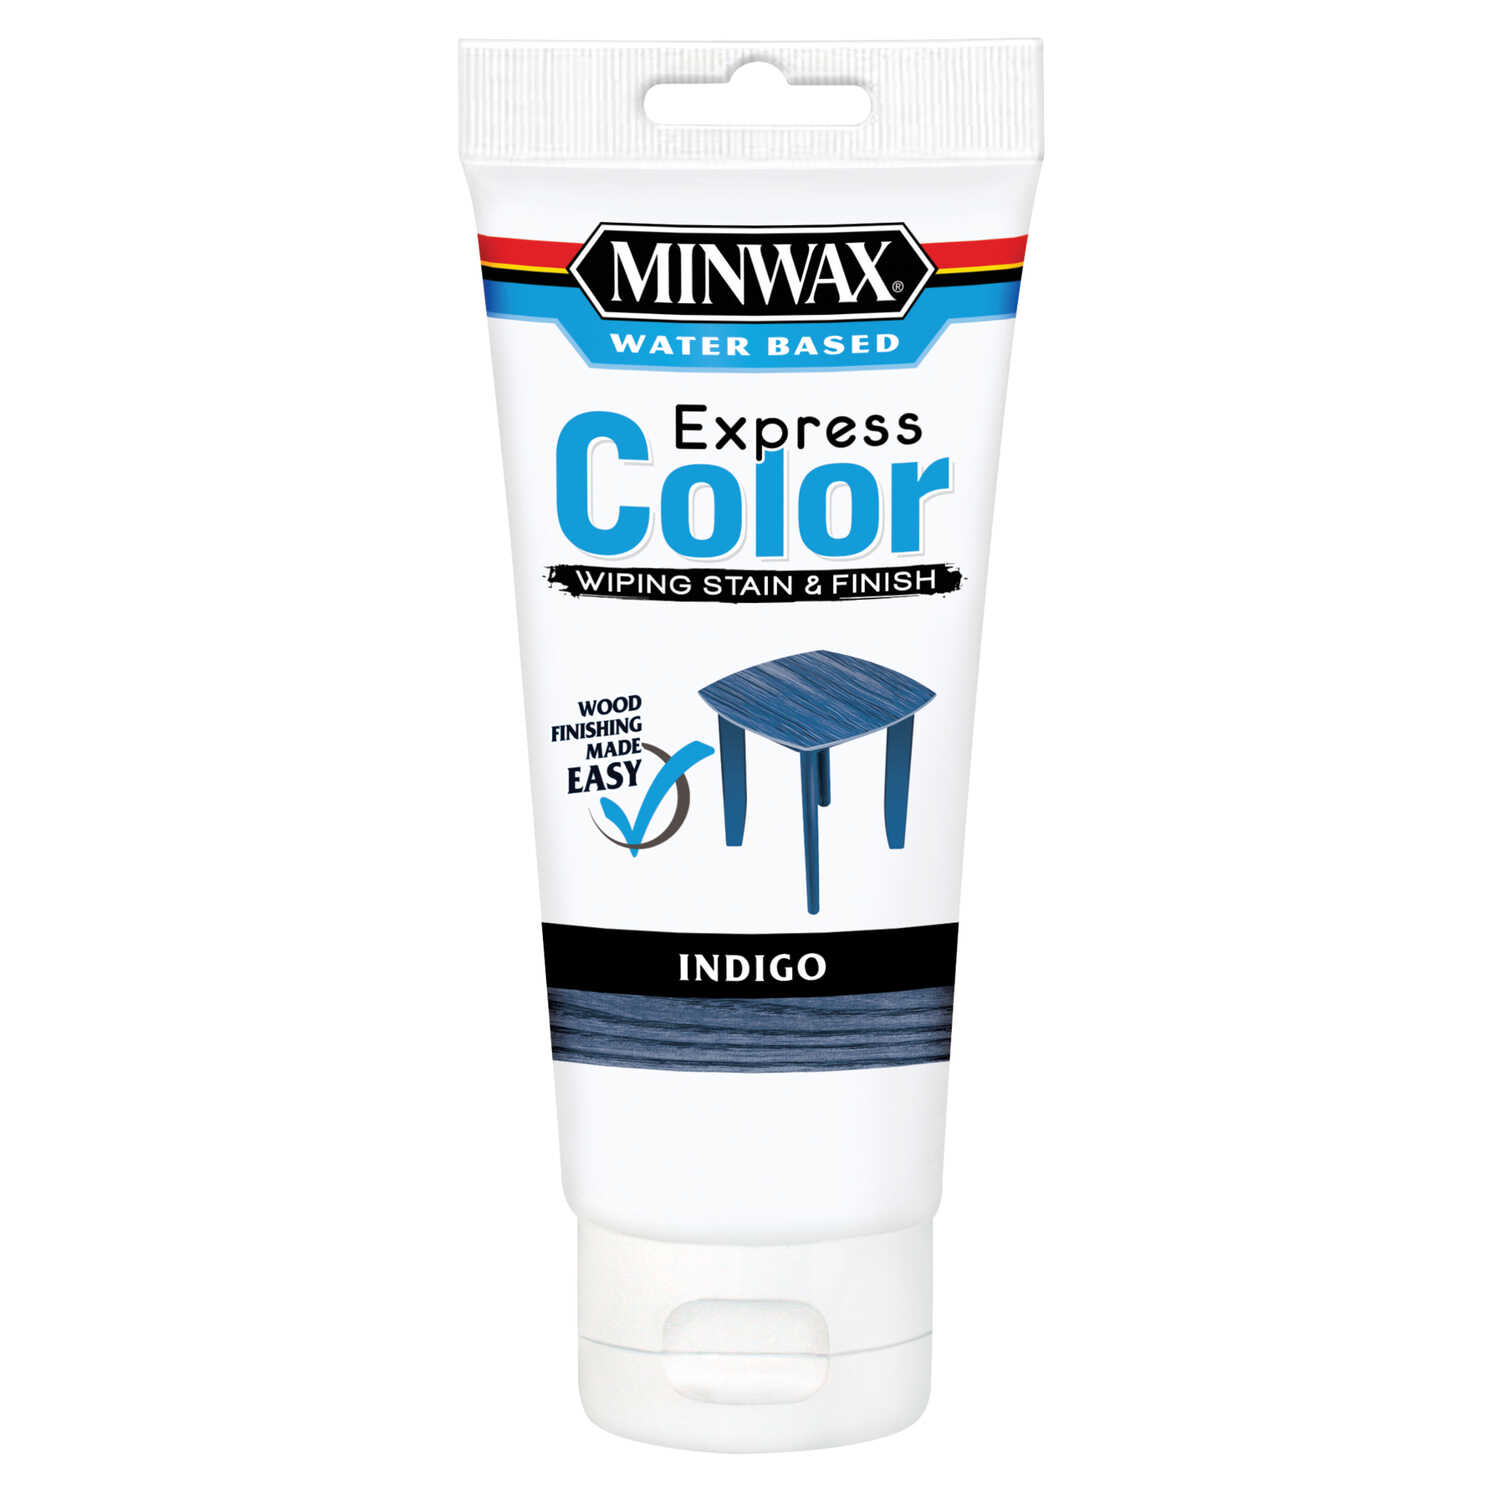 Minwax  Express Color  Semi-Transparent  Indigo  Water-Based  Acrylic  Wiping Stain and Finish  6 oz